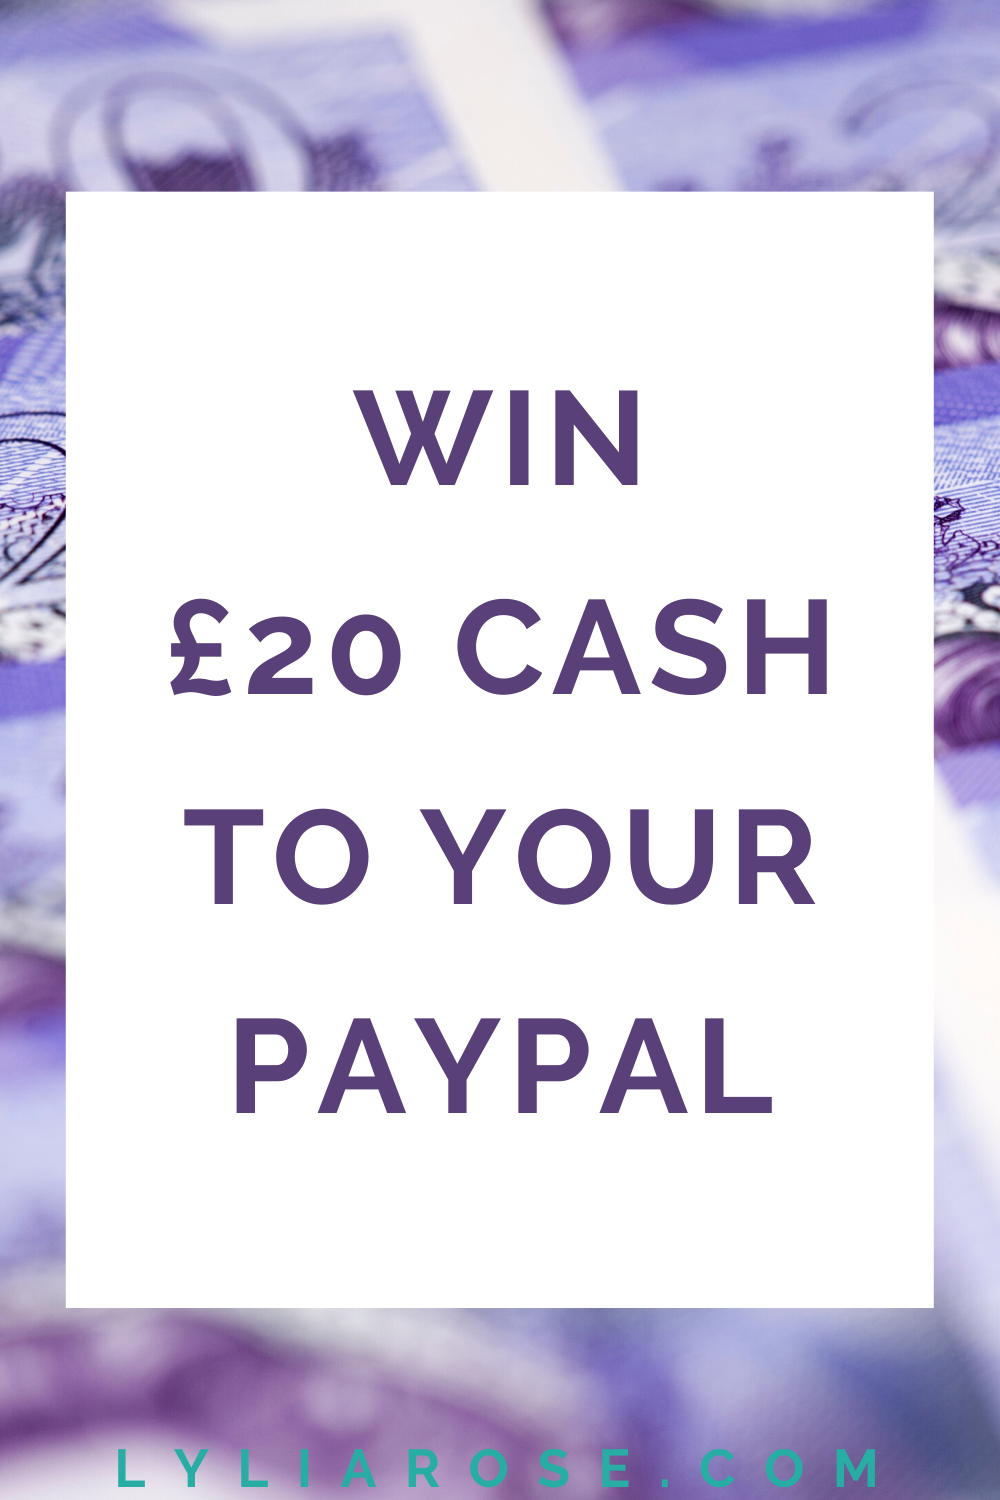 Win cash to your paypal